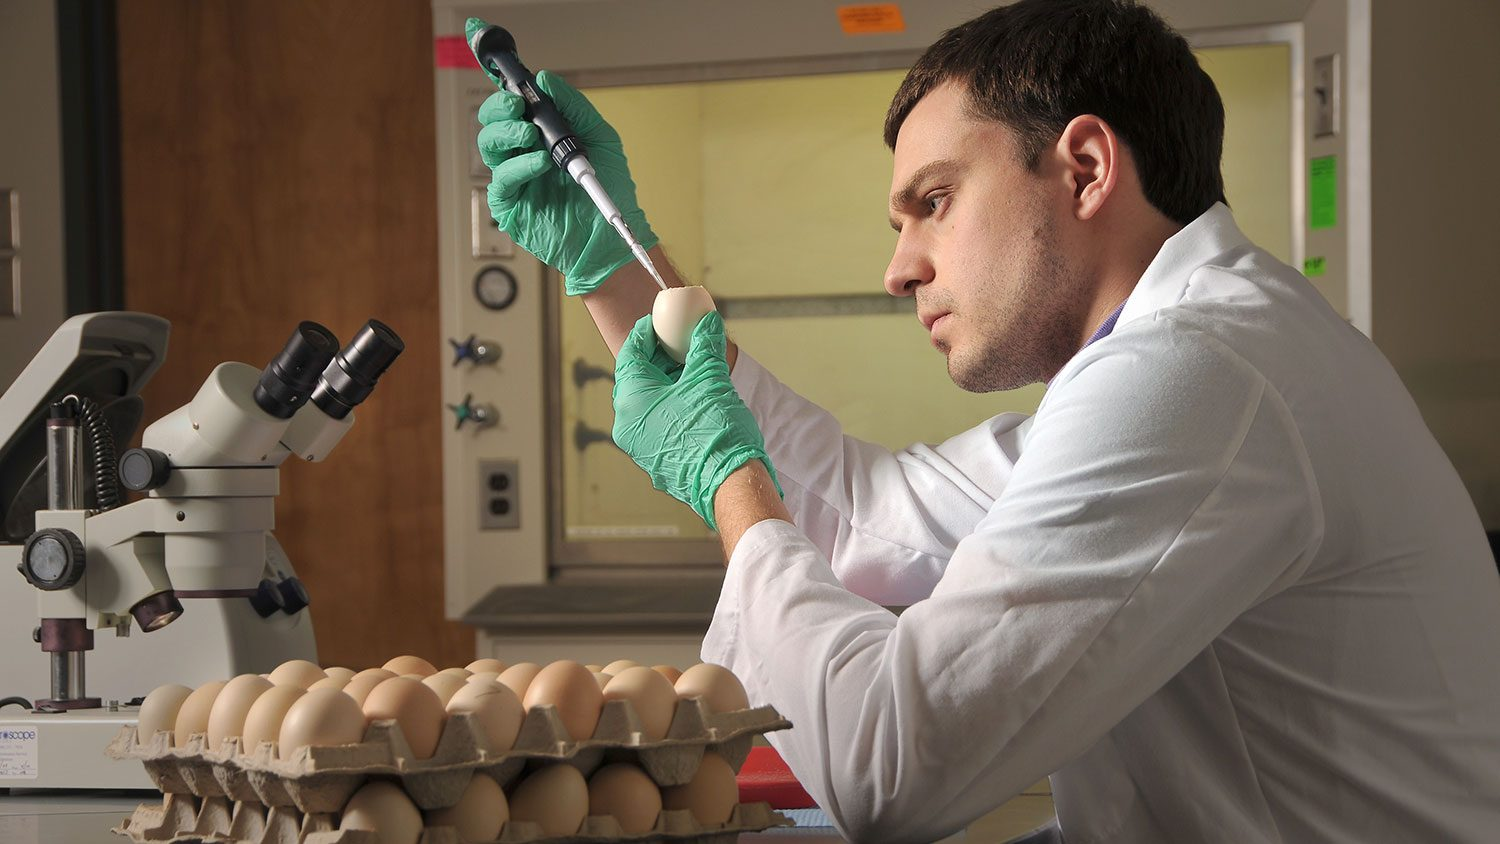 Researcher examining egg in labe